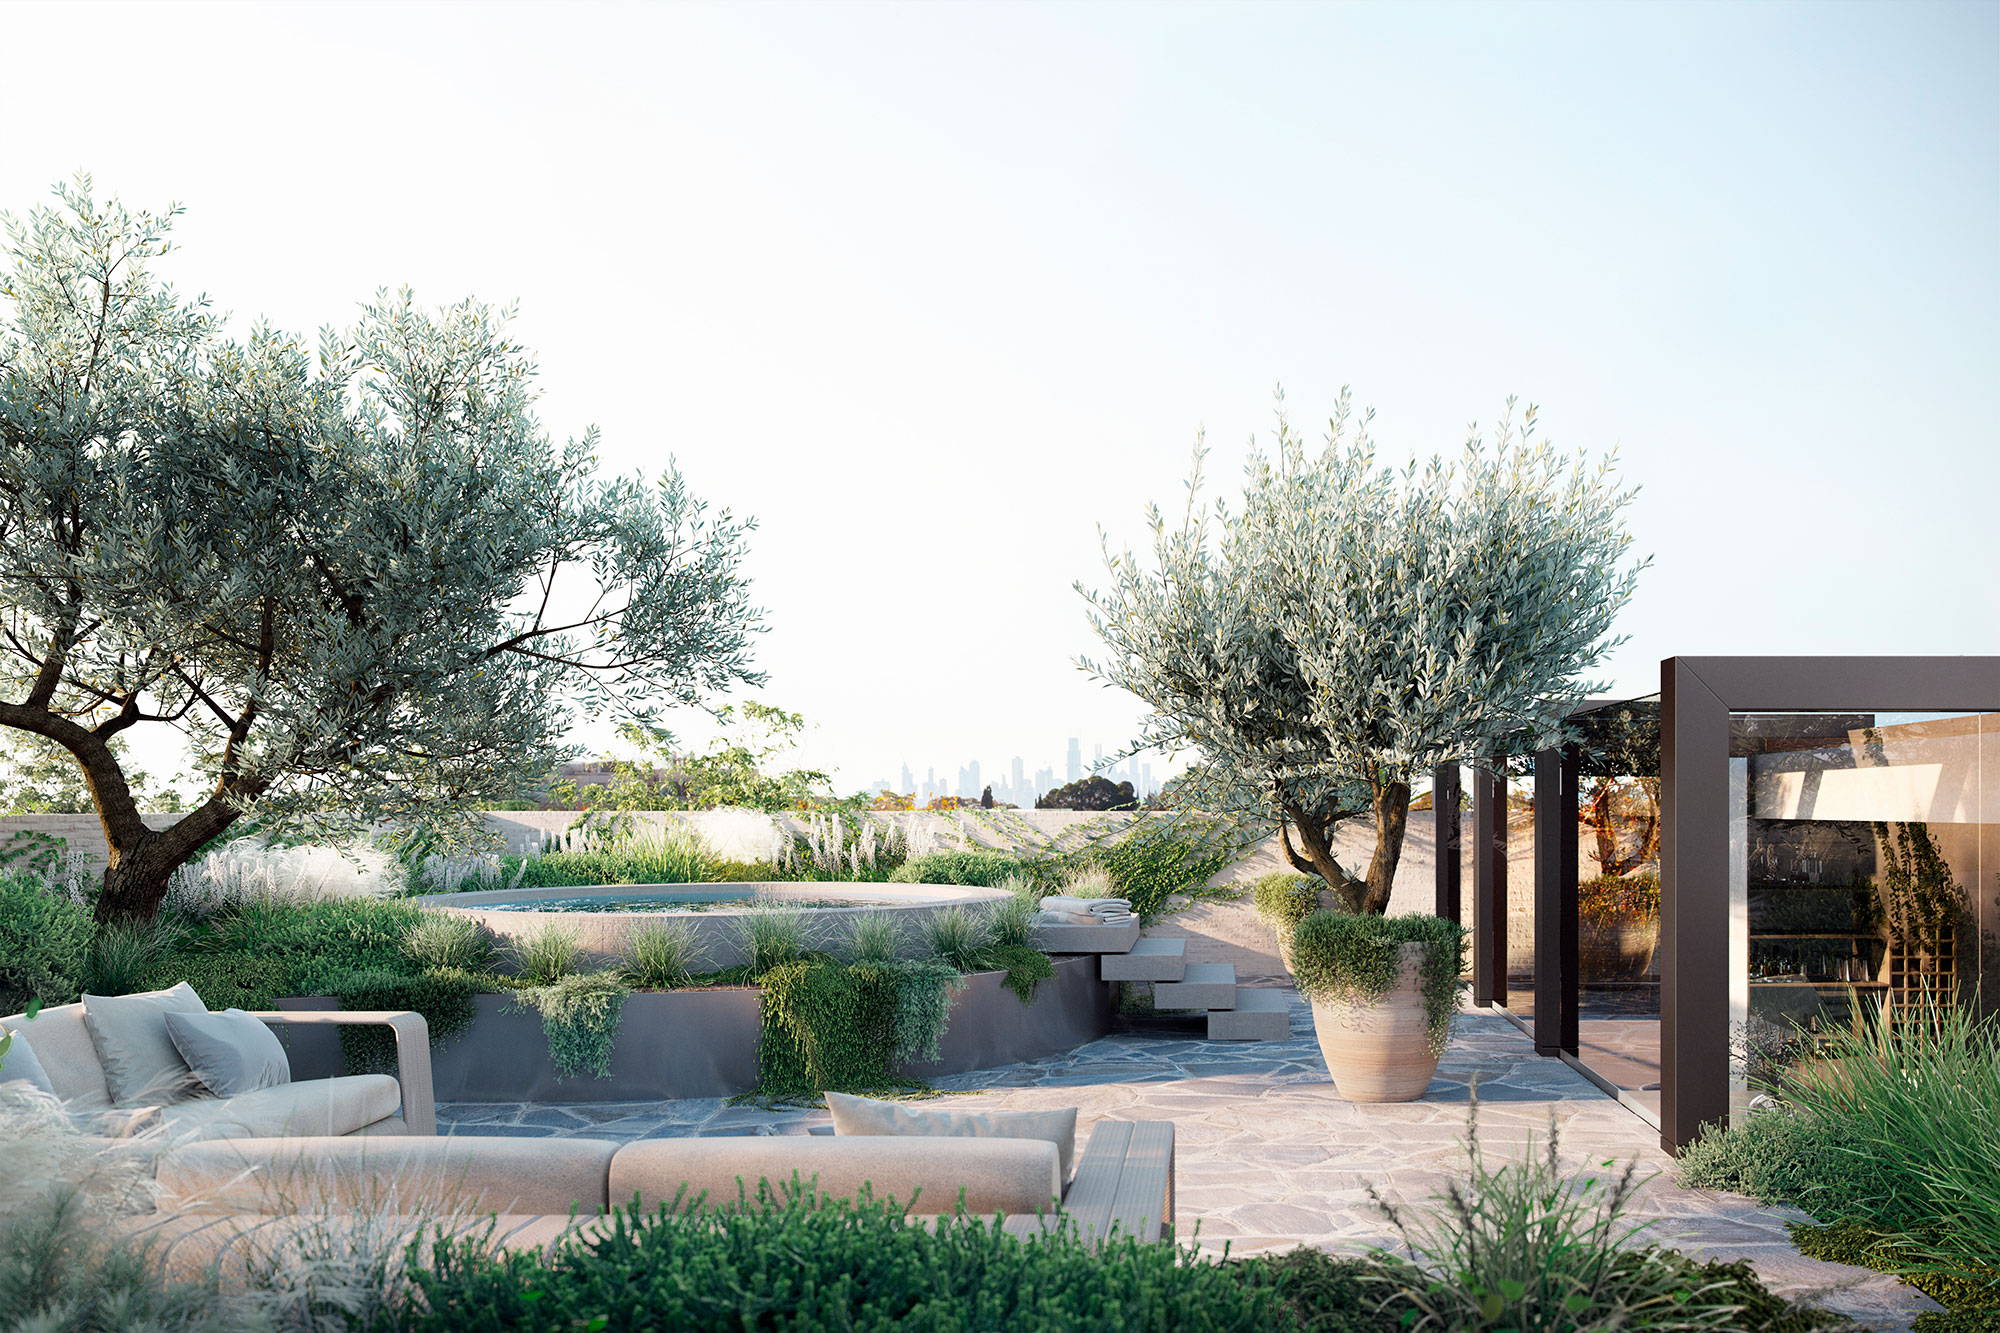 Willow, a stunning new project inspired by nature and the bayside vibrance of Brighton